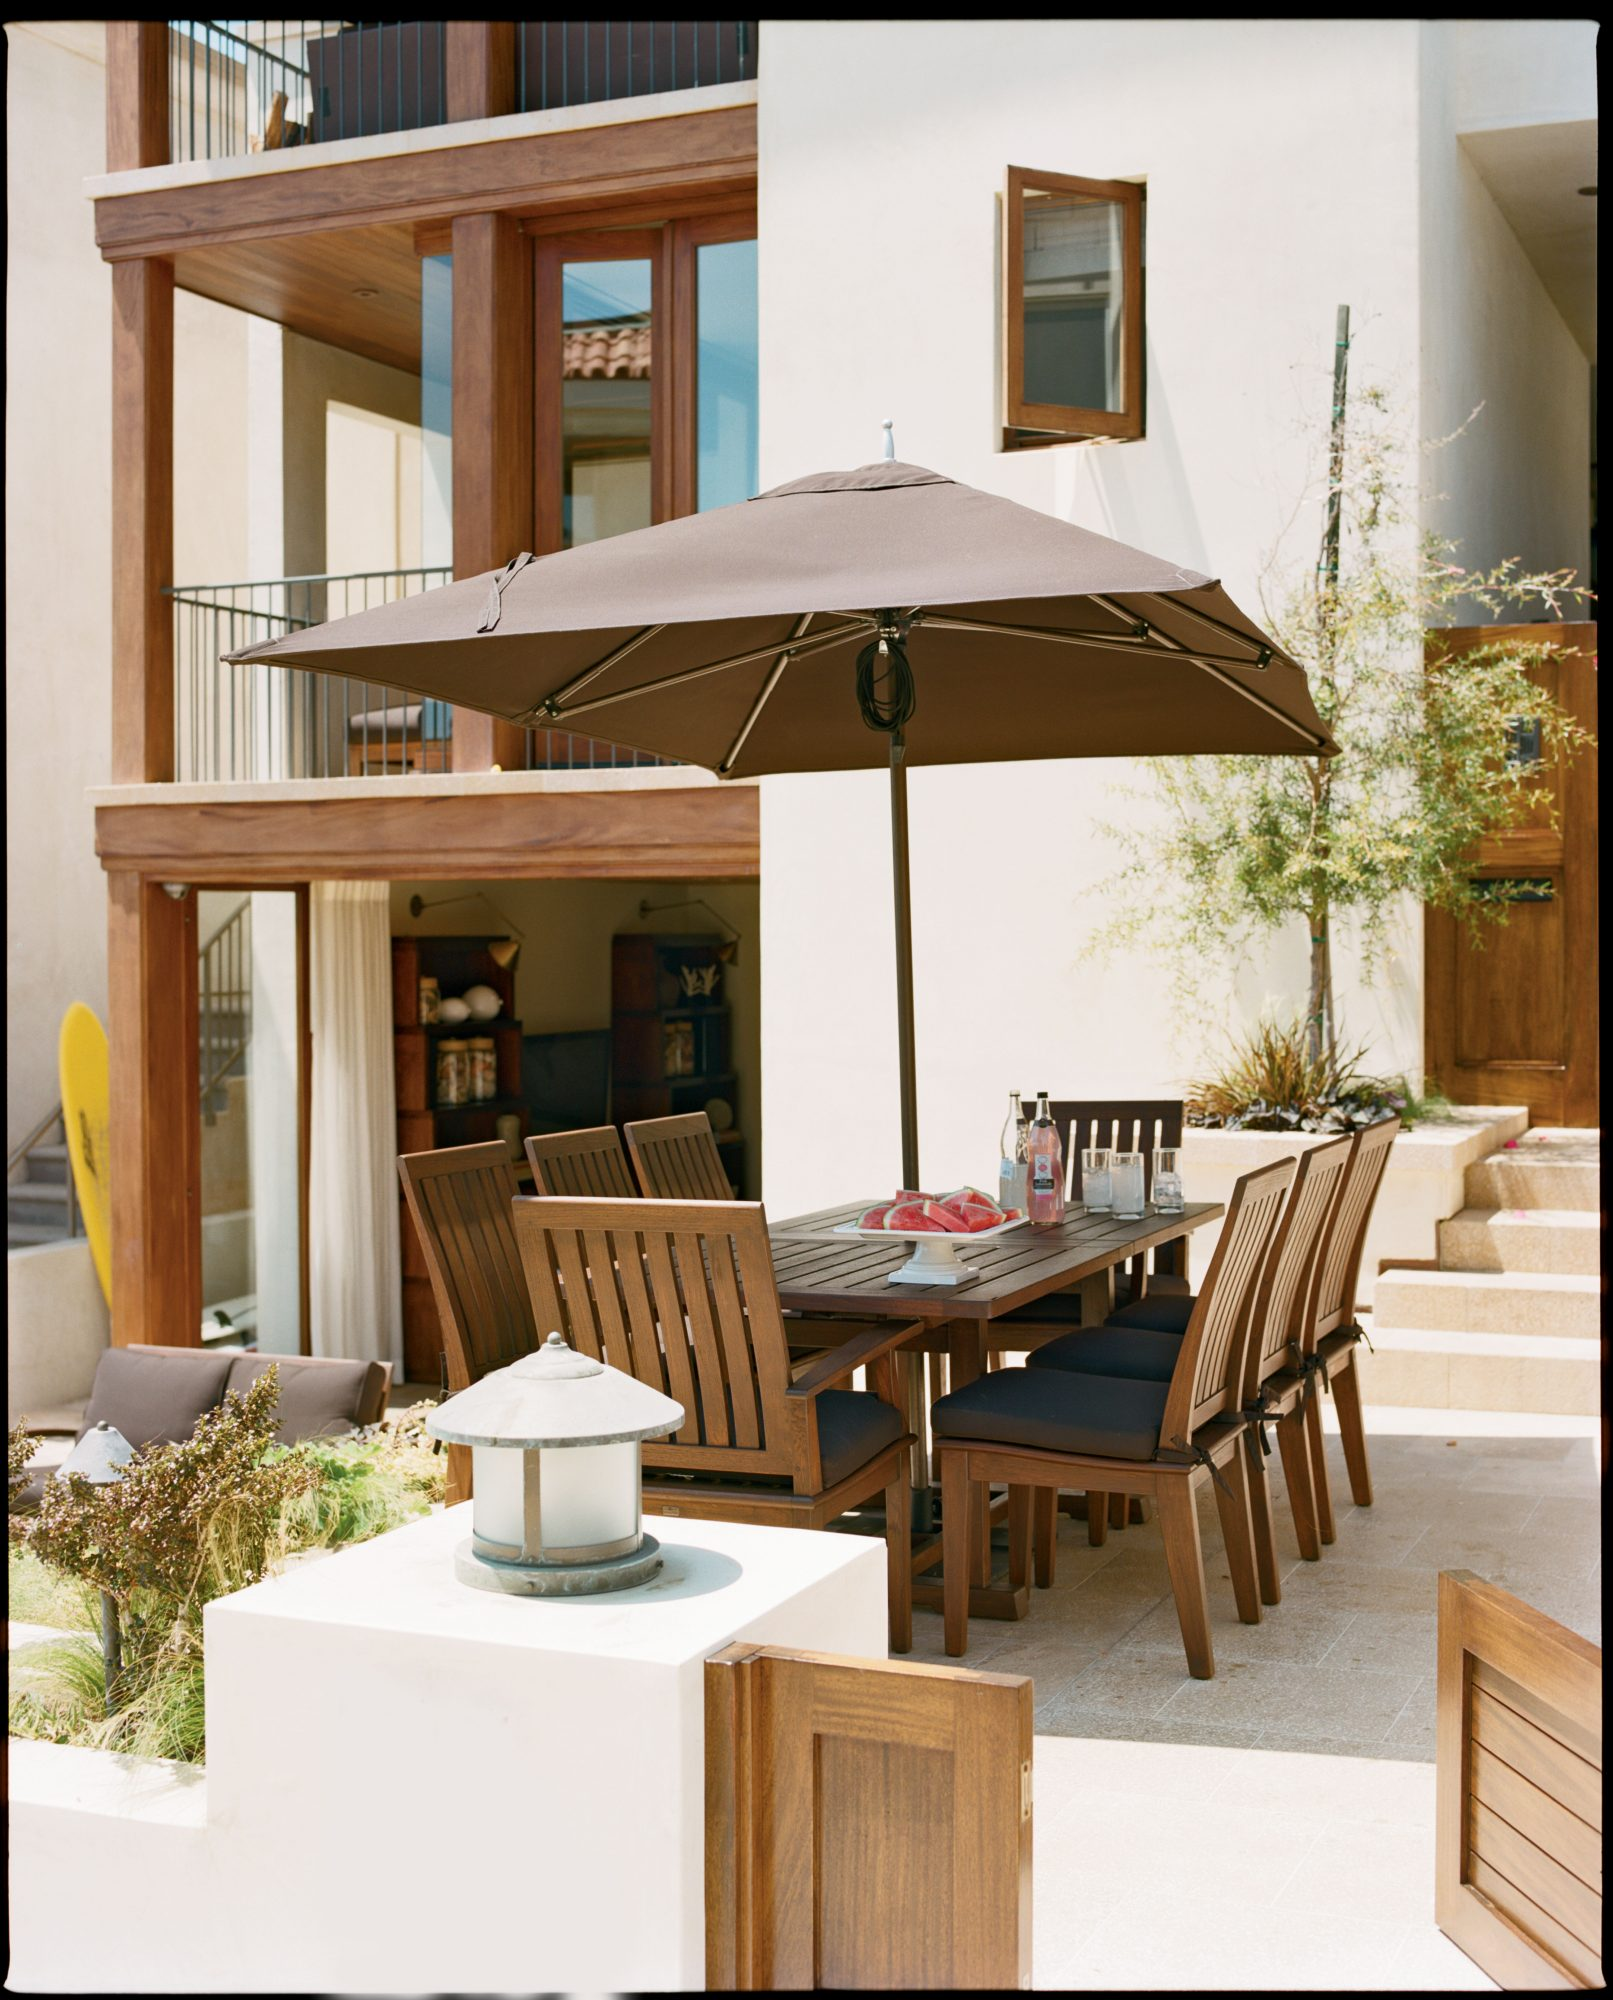 With a straight-edge table and stylishly modern umbrella, this outdoor patio keeps entertaining simple. A multilevel patio breaks the space up into separate outdoor rooms.